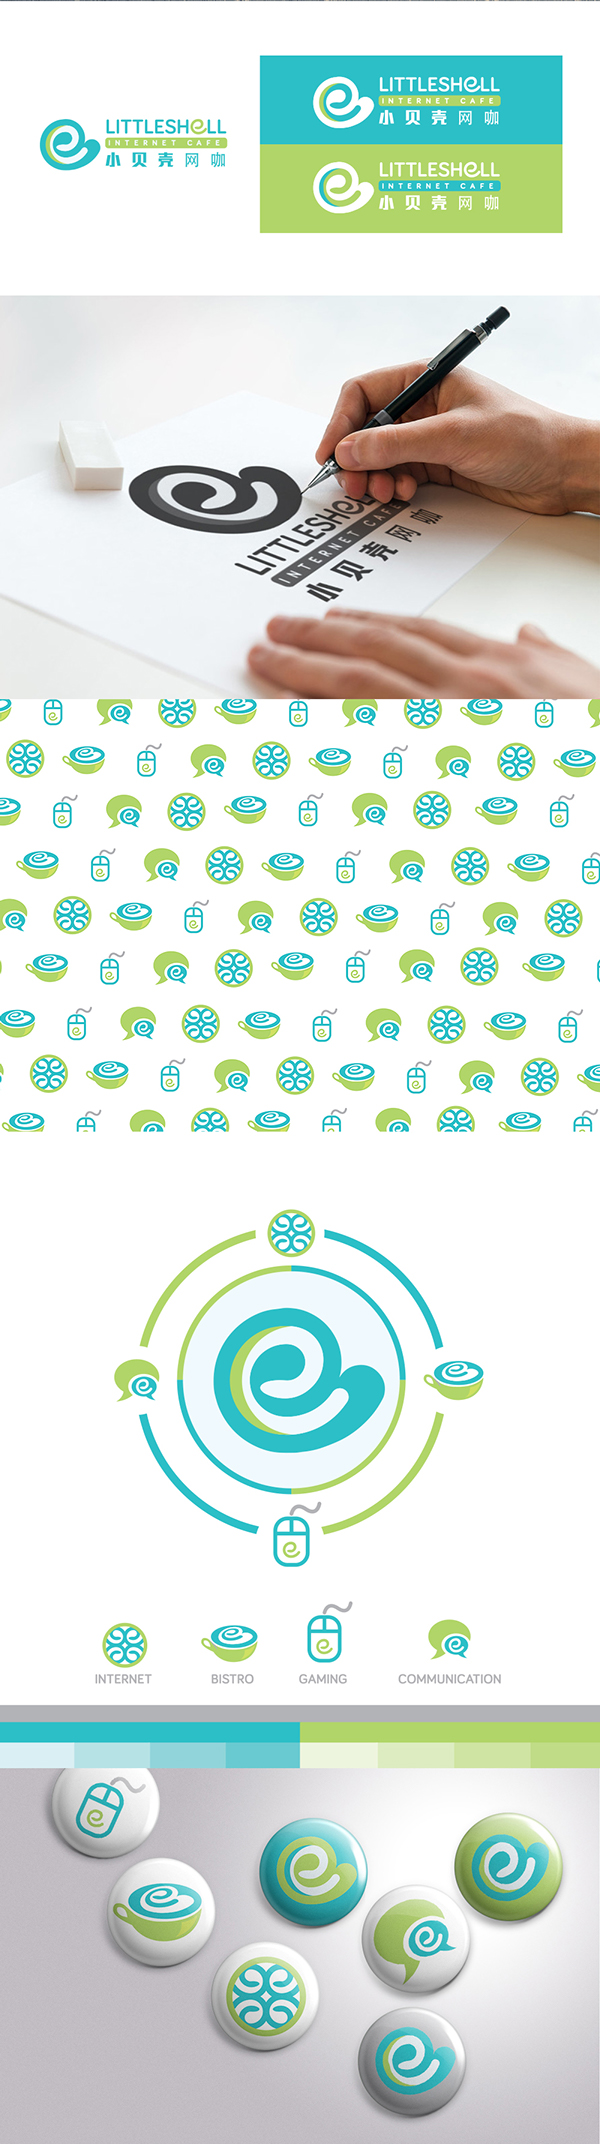 Littleshell internet cafe branding